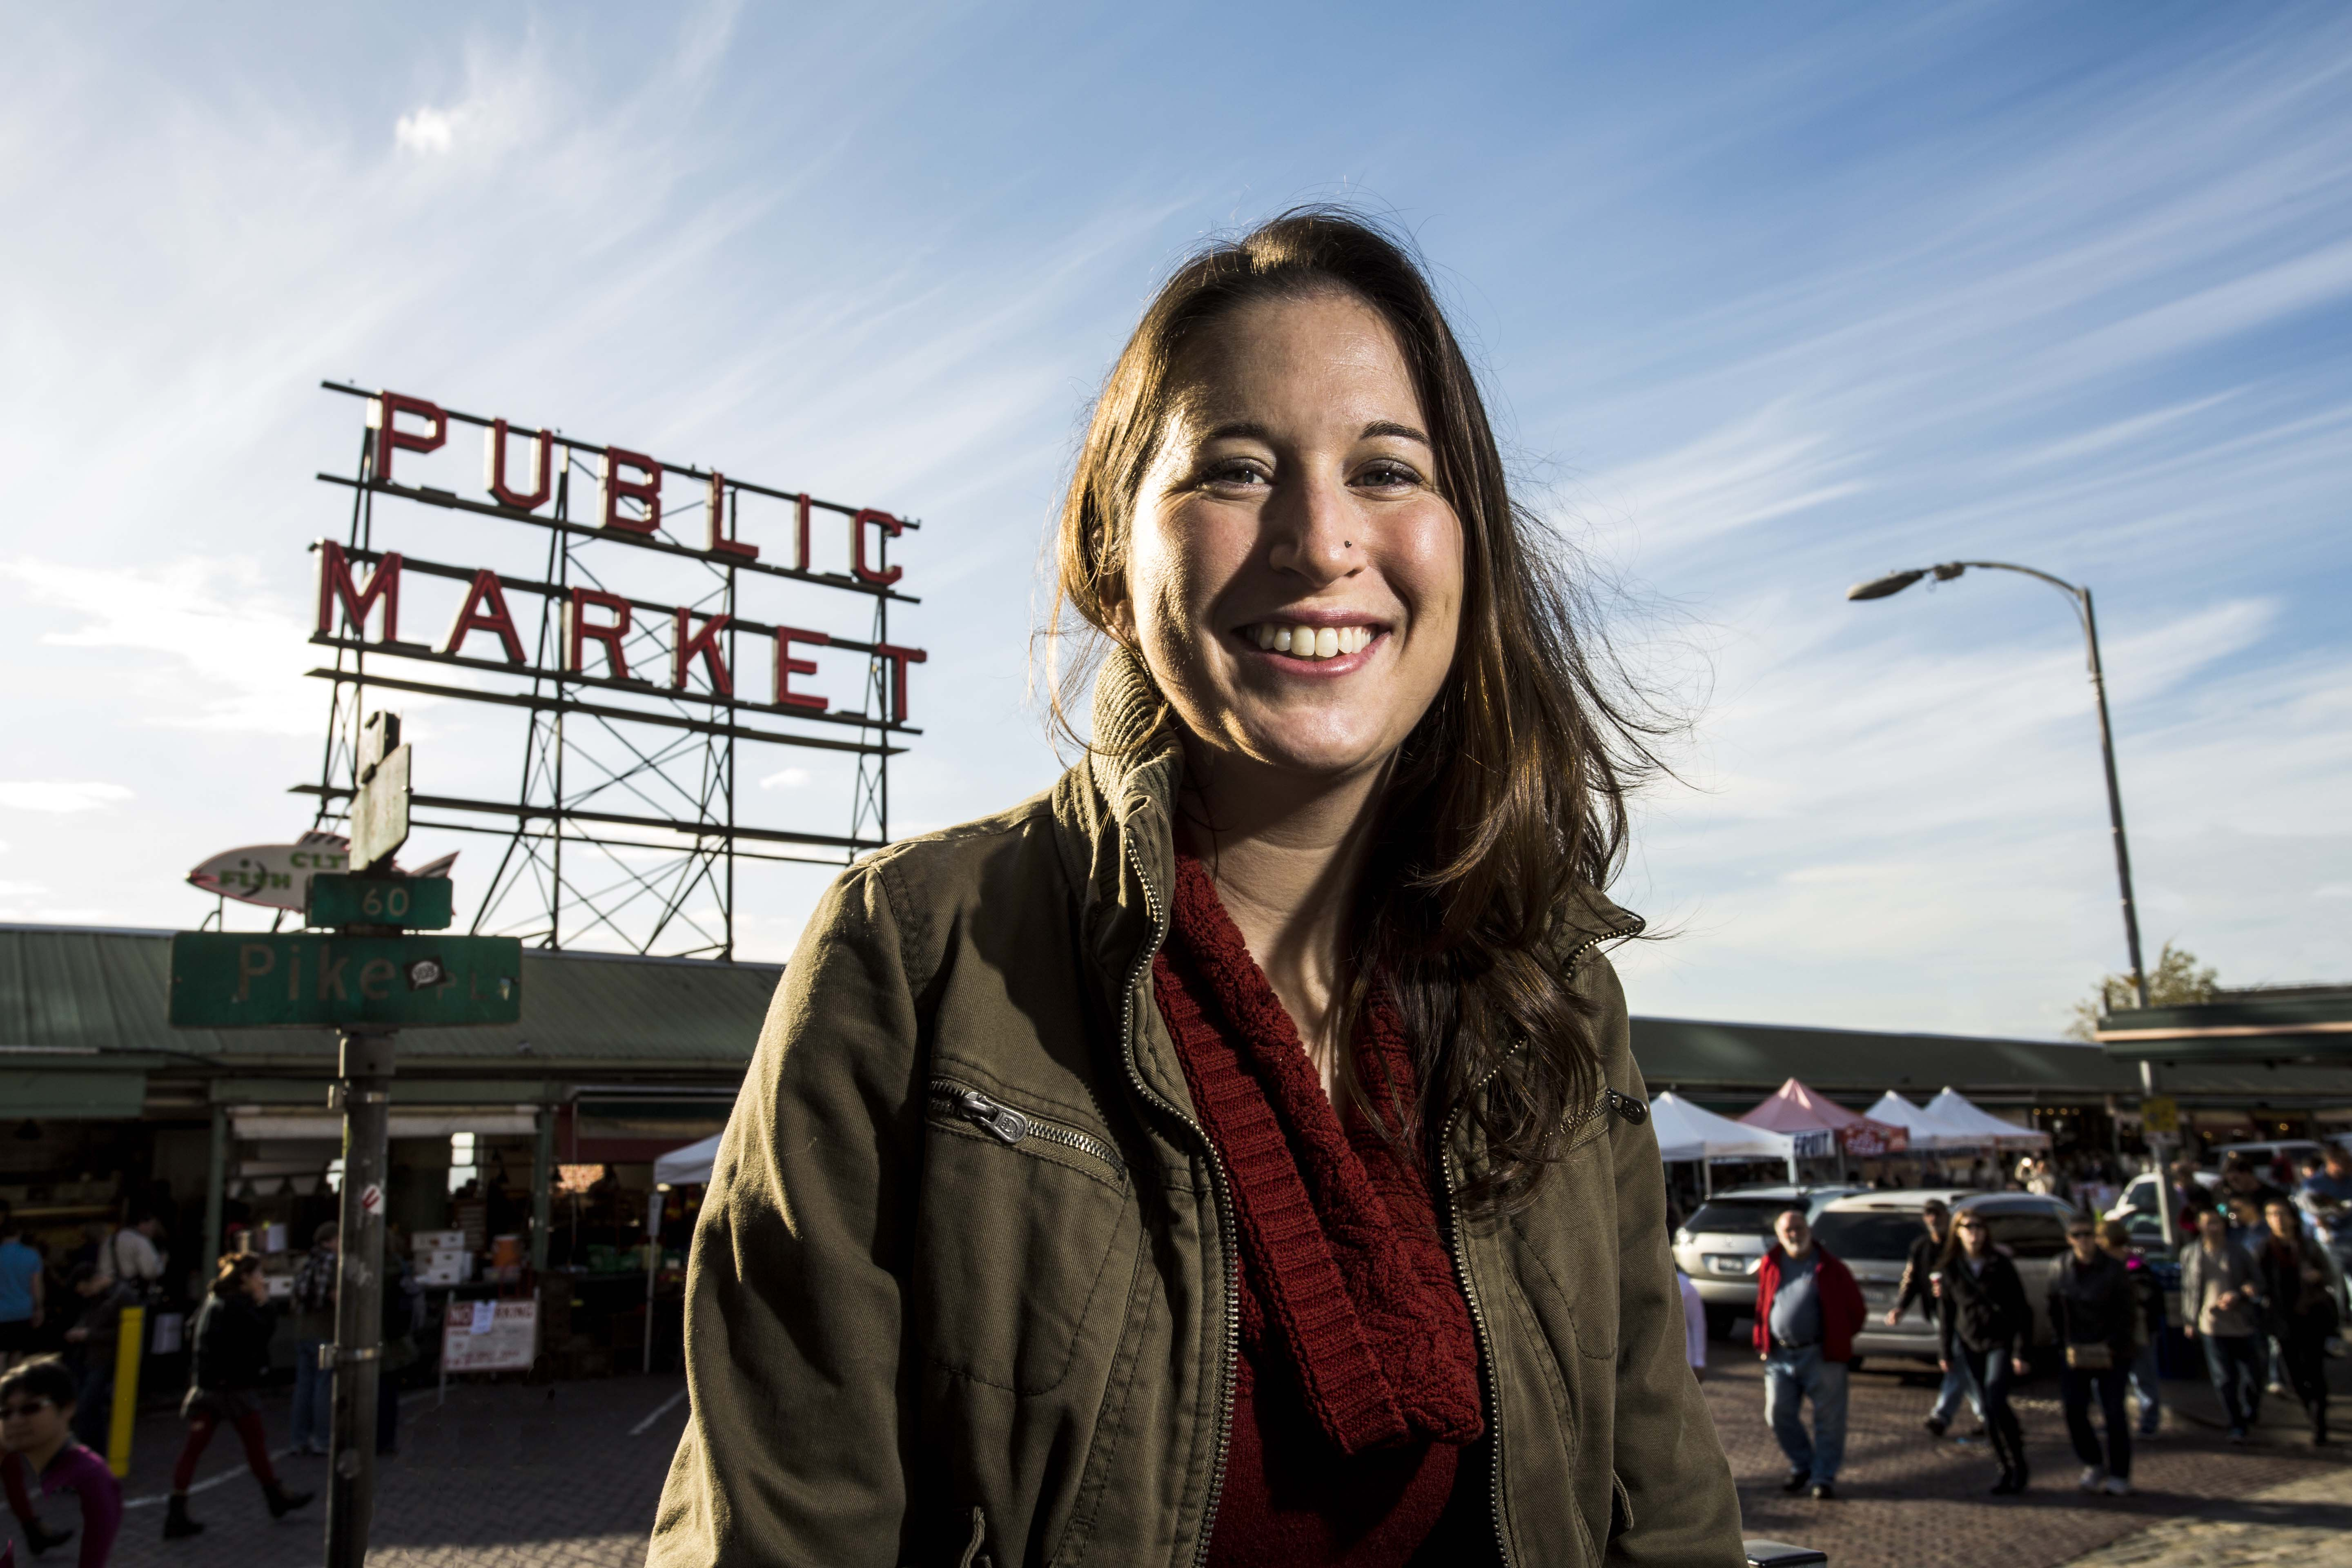 Berkeley MBA for Executives student Karin Lions, who commutes to the program from Seattle